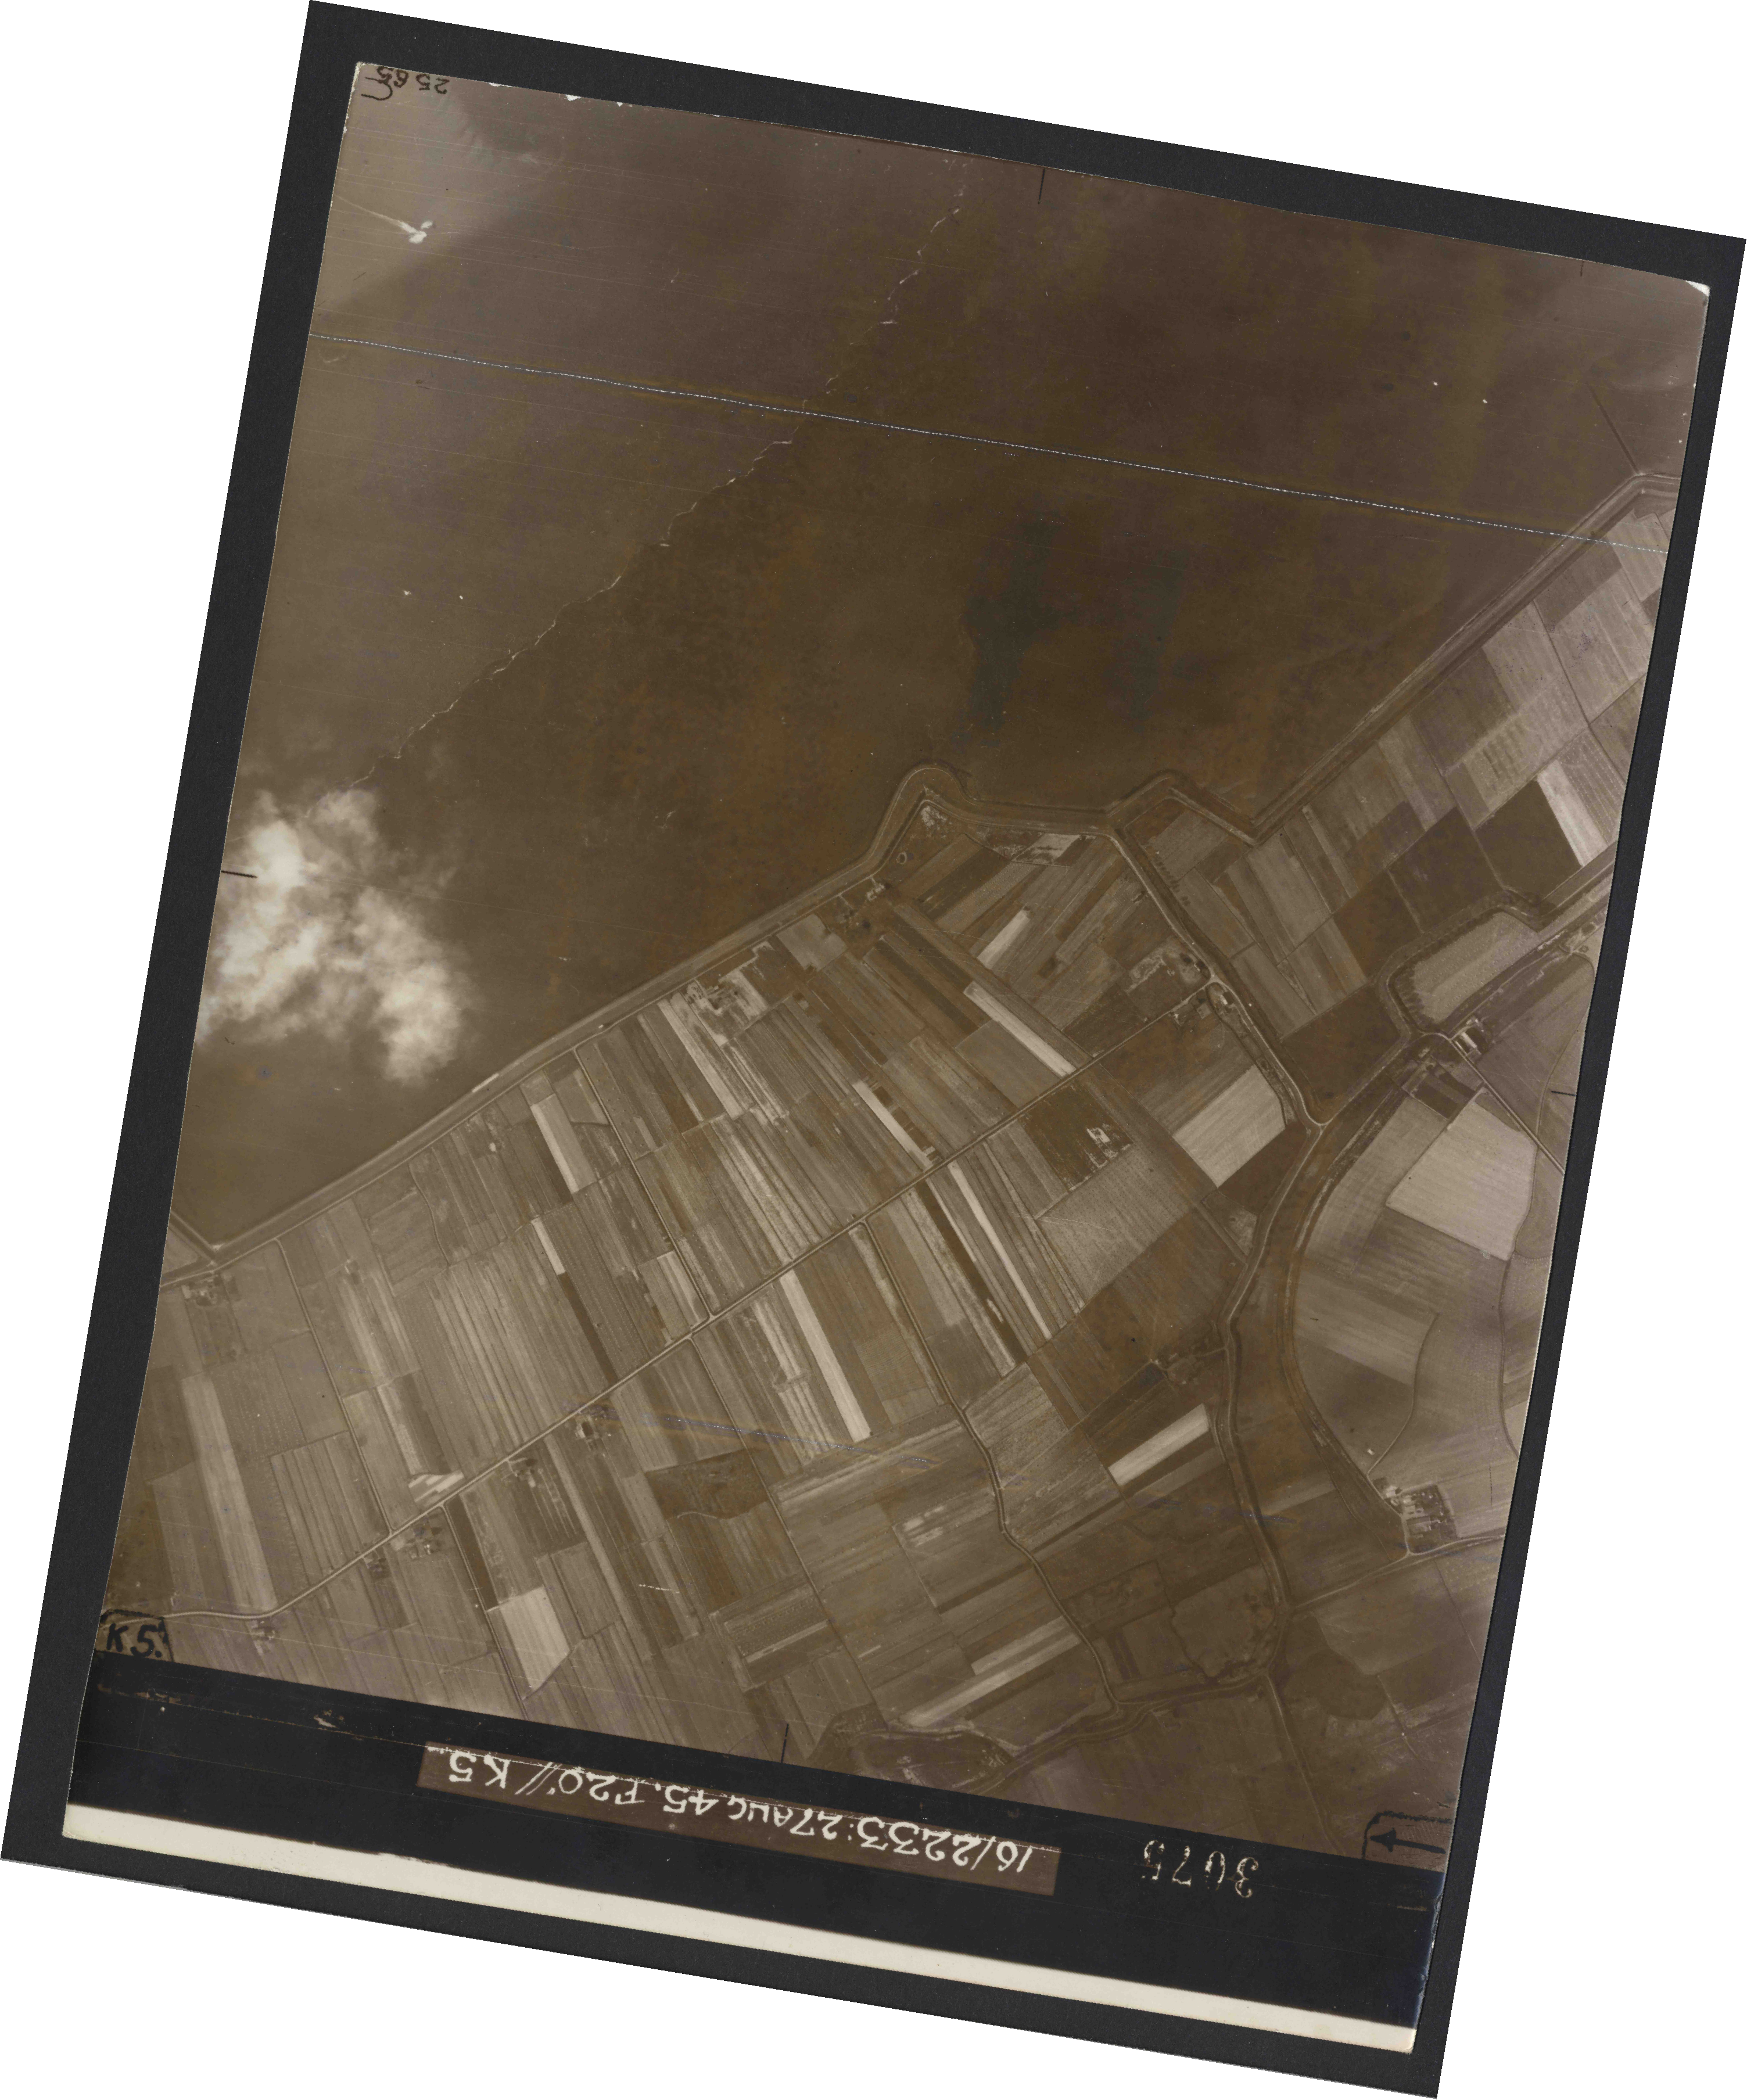 Collection RAF aerial photos 1940-1945 - flight 034, run 08, photo 3075